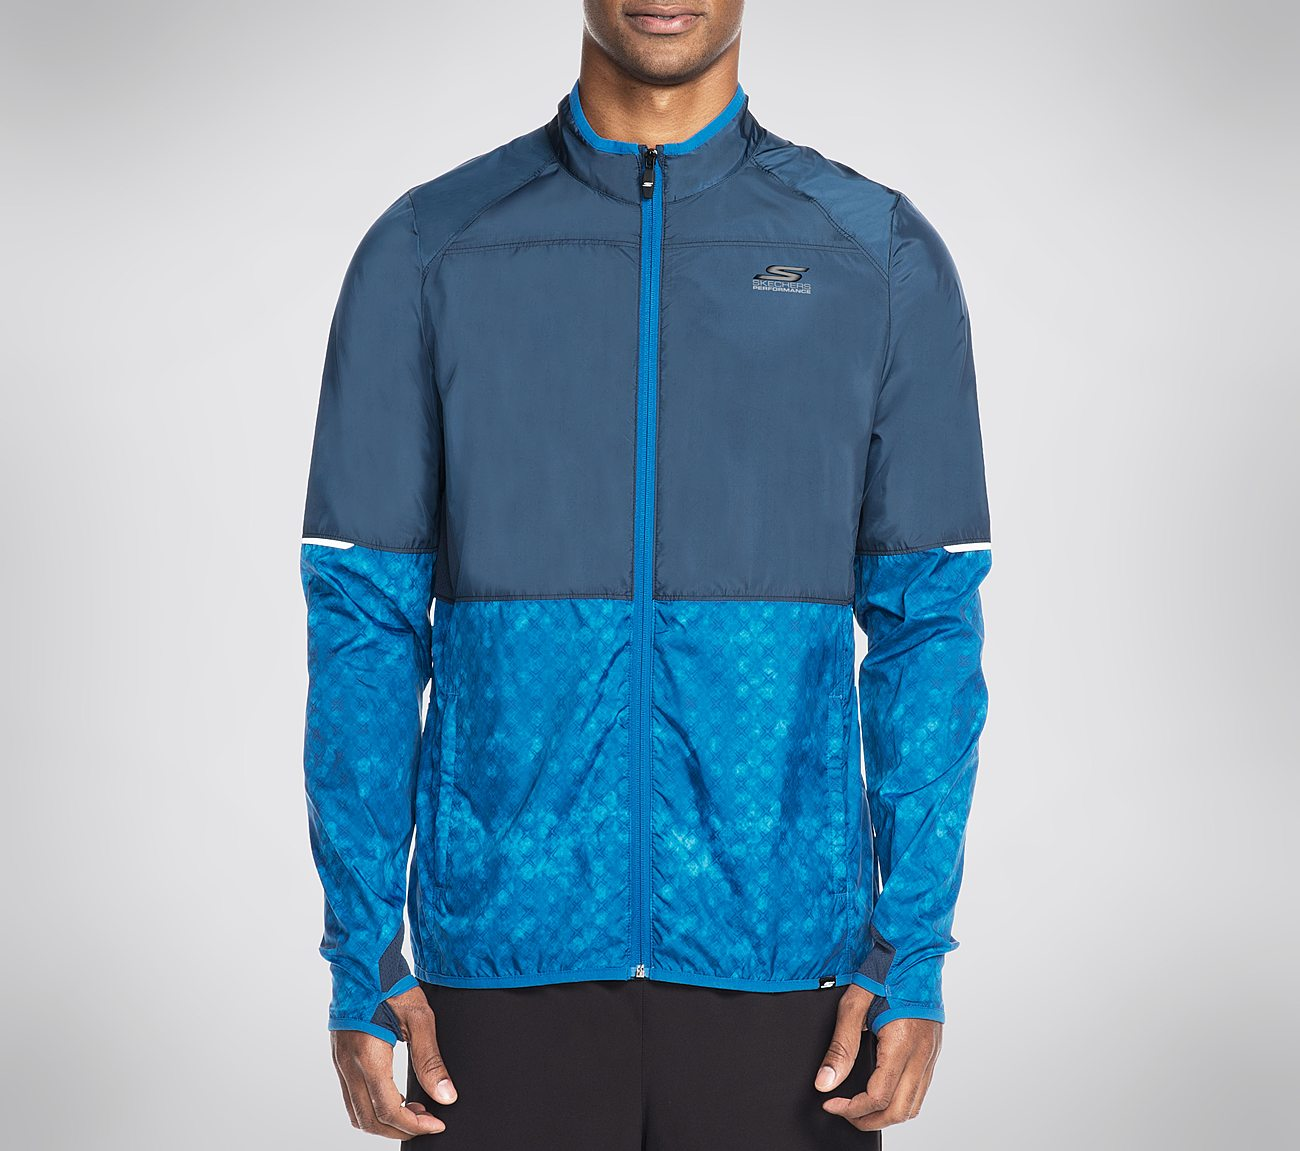 Headwind Packable Jacket